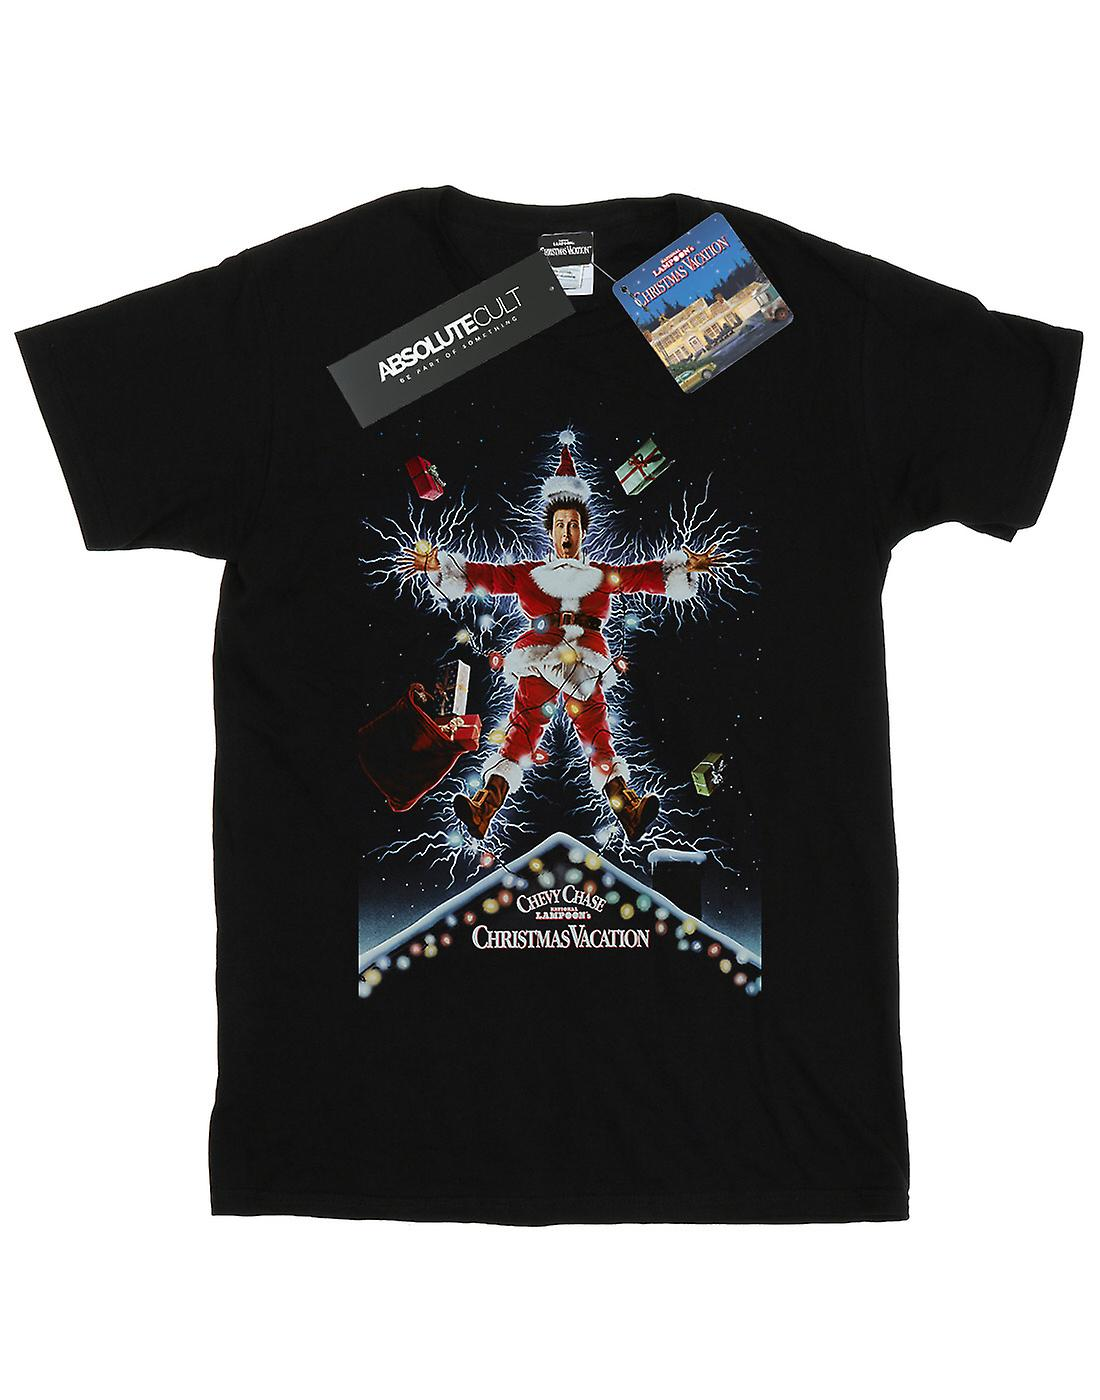 National Lampoon's Christmas Vacation Girls Poster T-Shirt